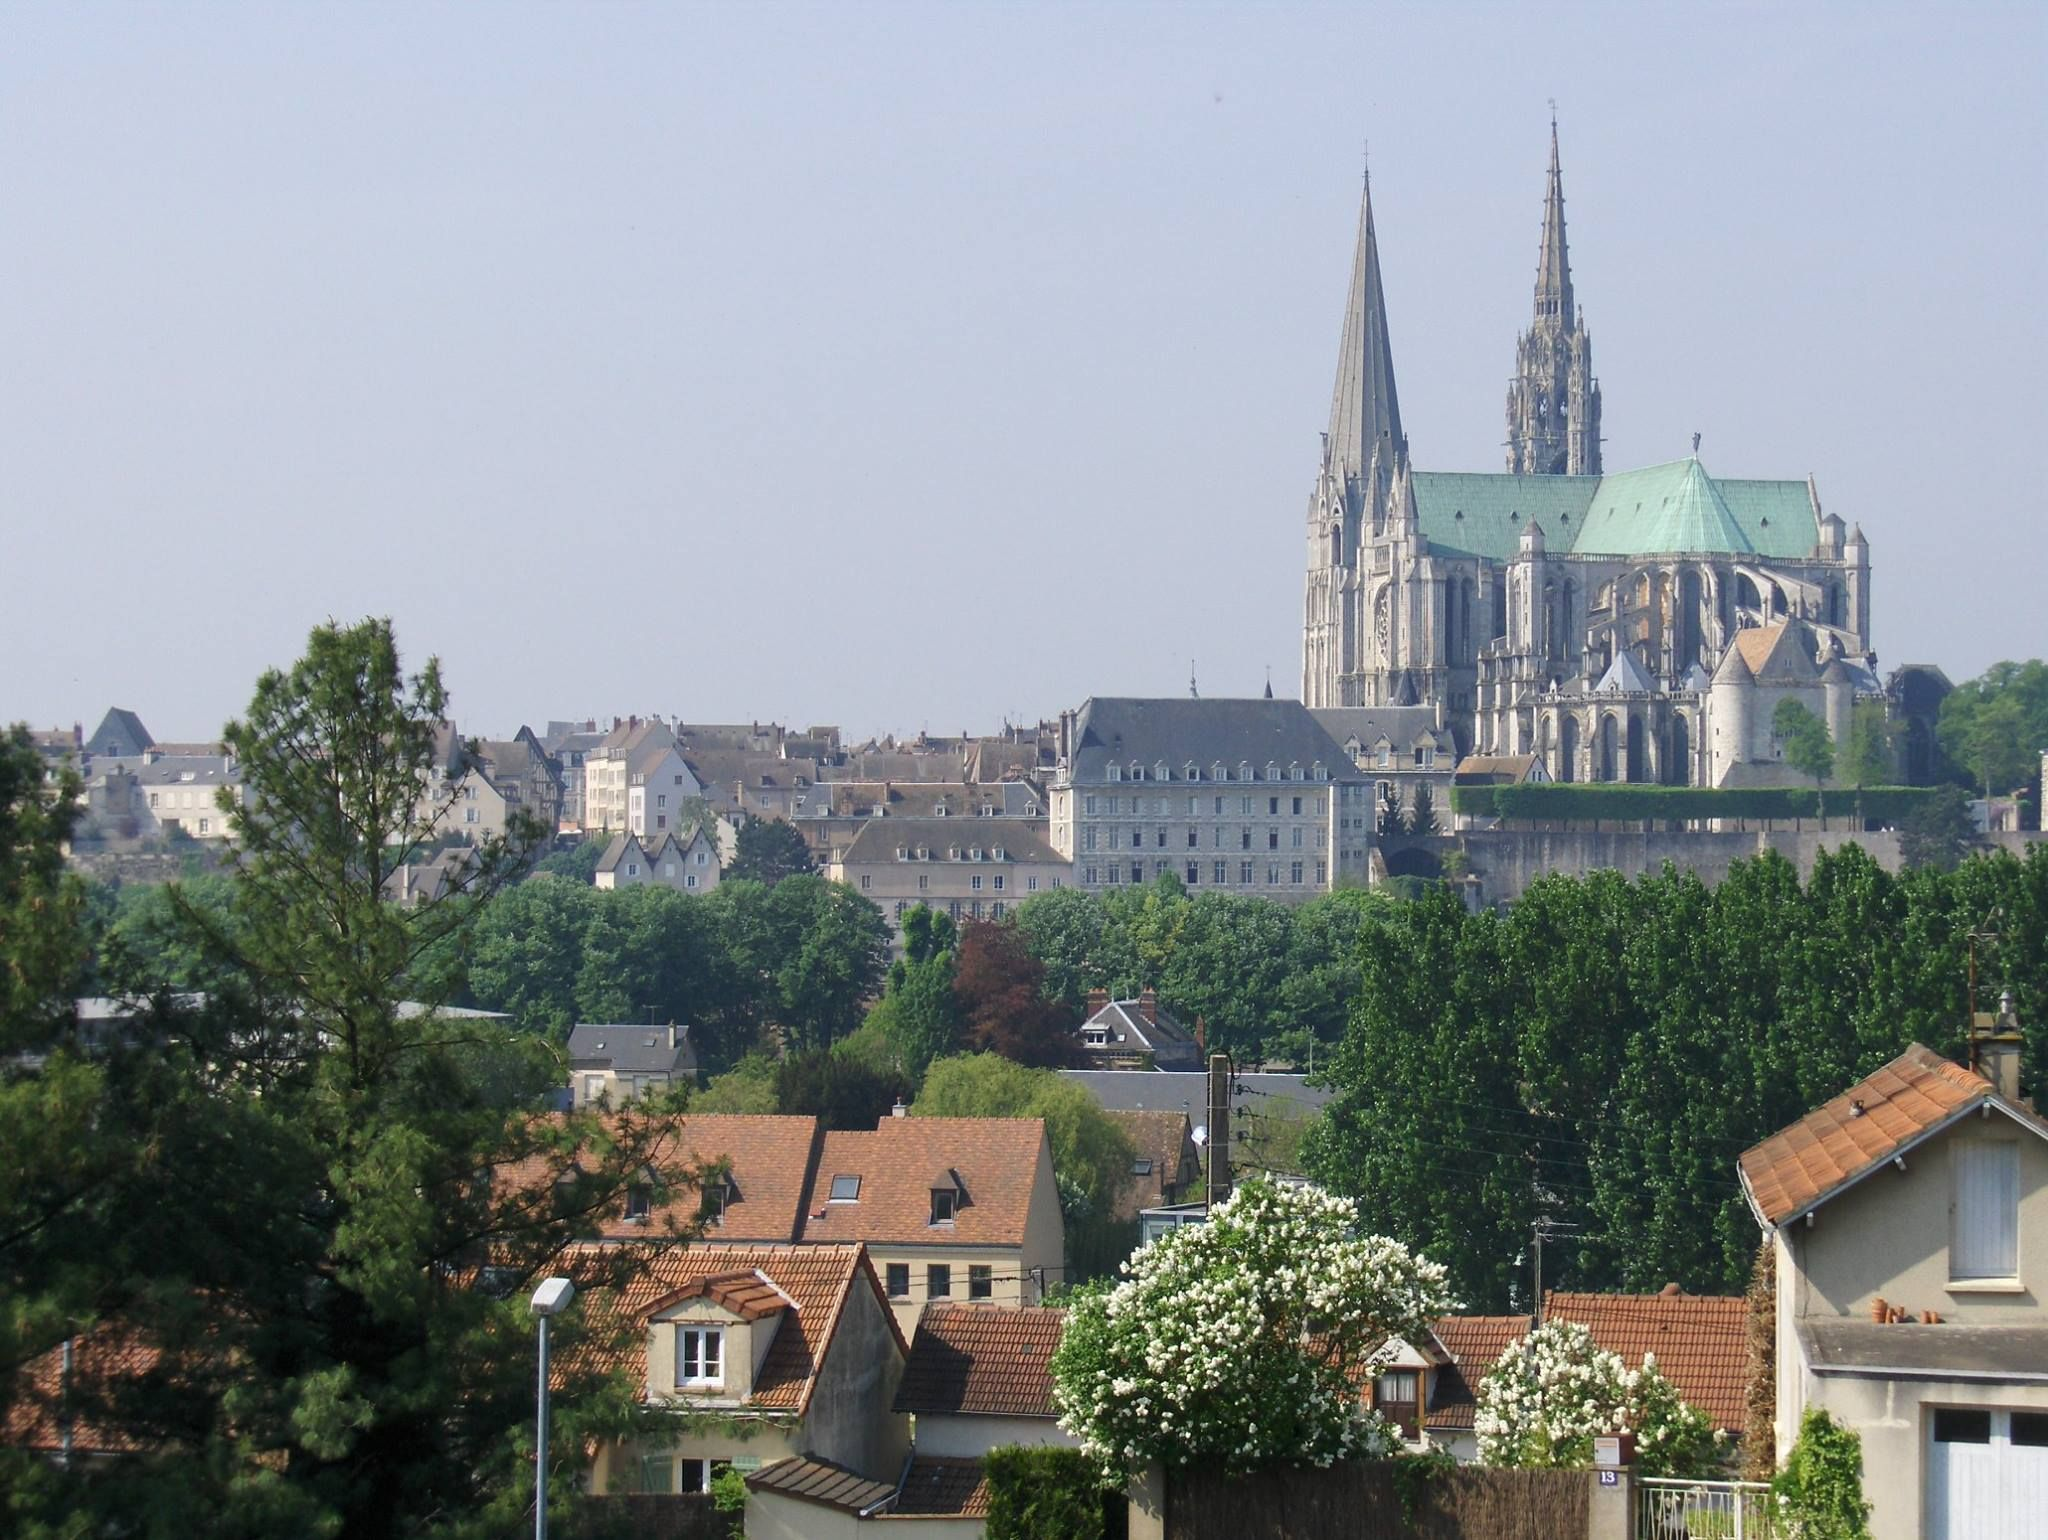 http://www.euroguides.eu/euroguides/france/centre/chartres.html